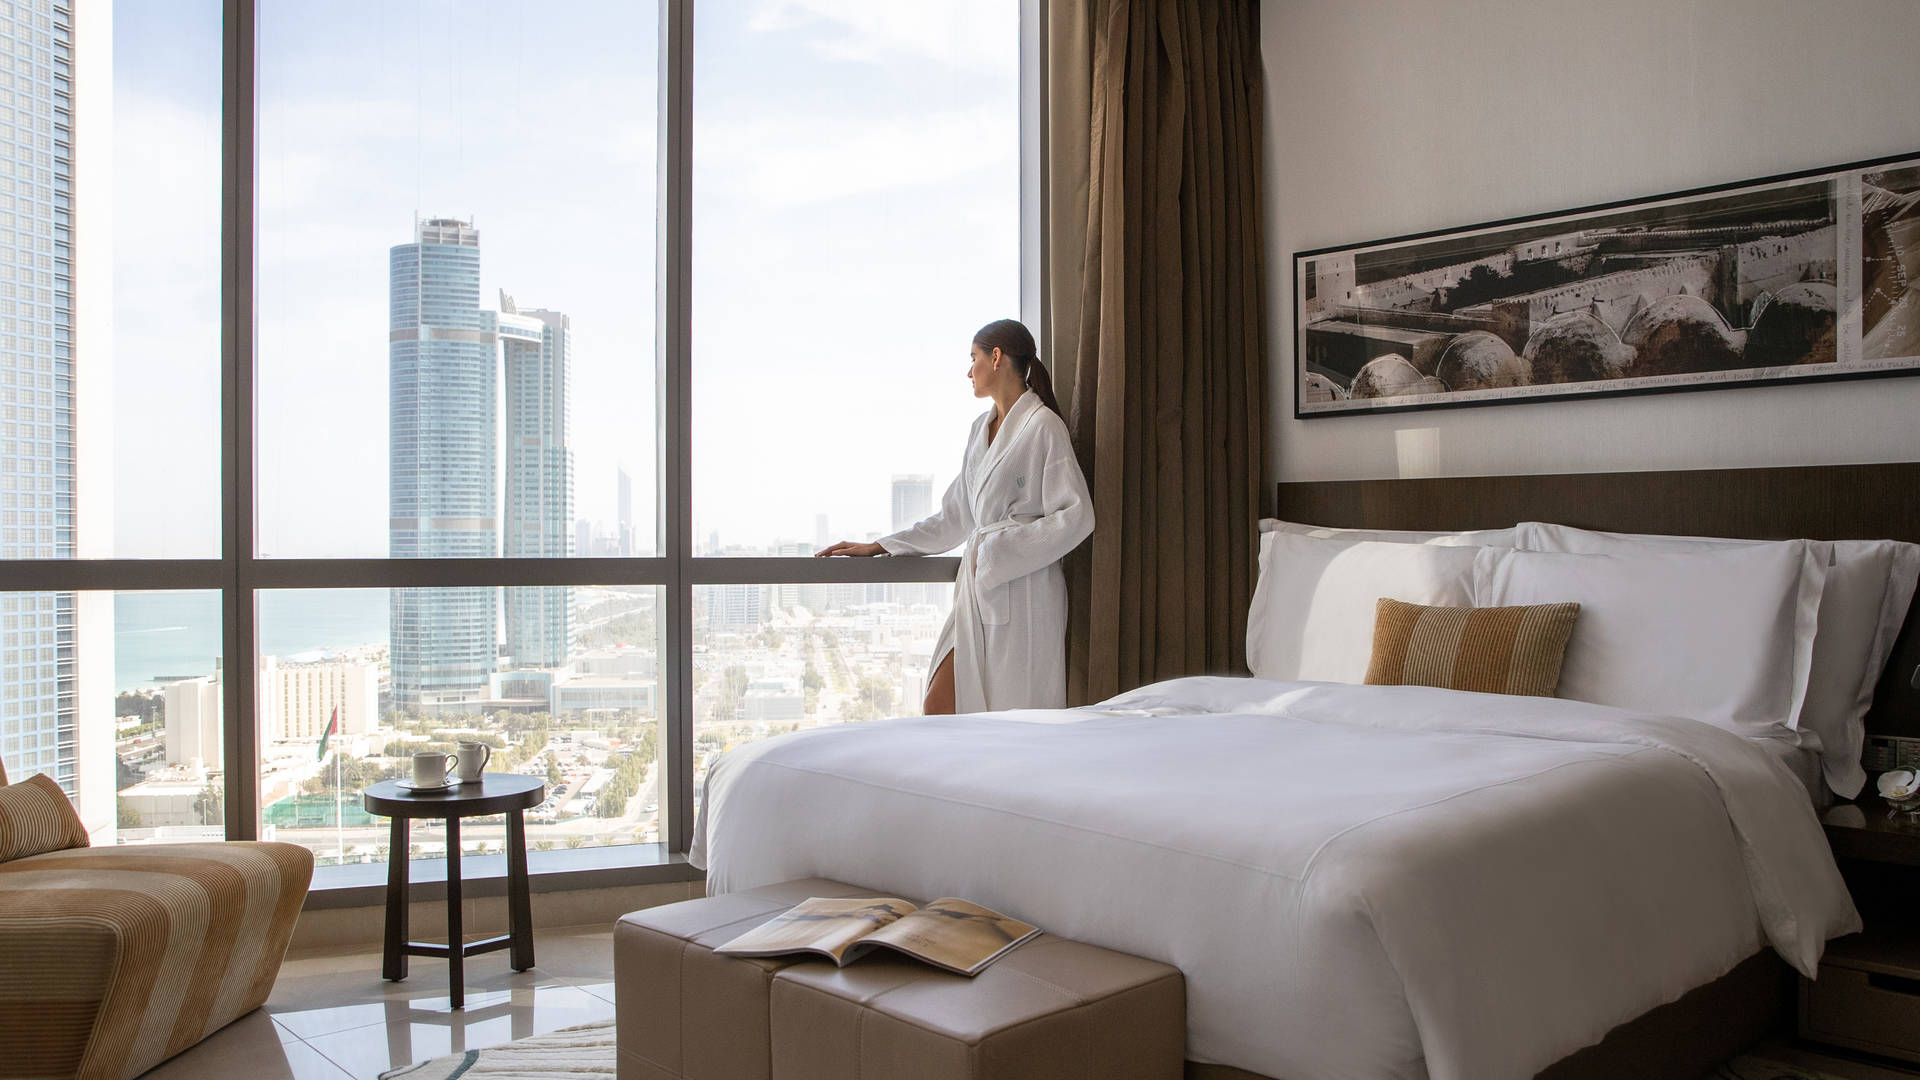 Complimentary nights with Jumeirah One